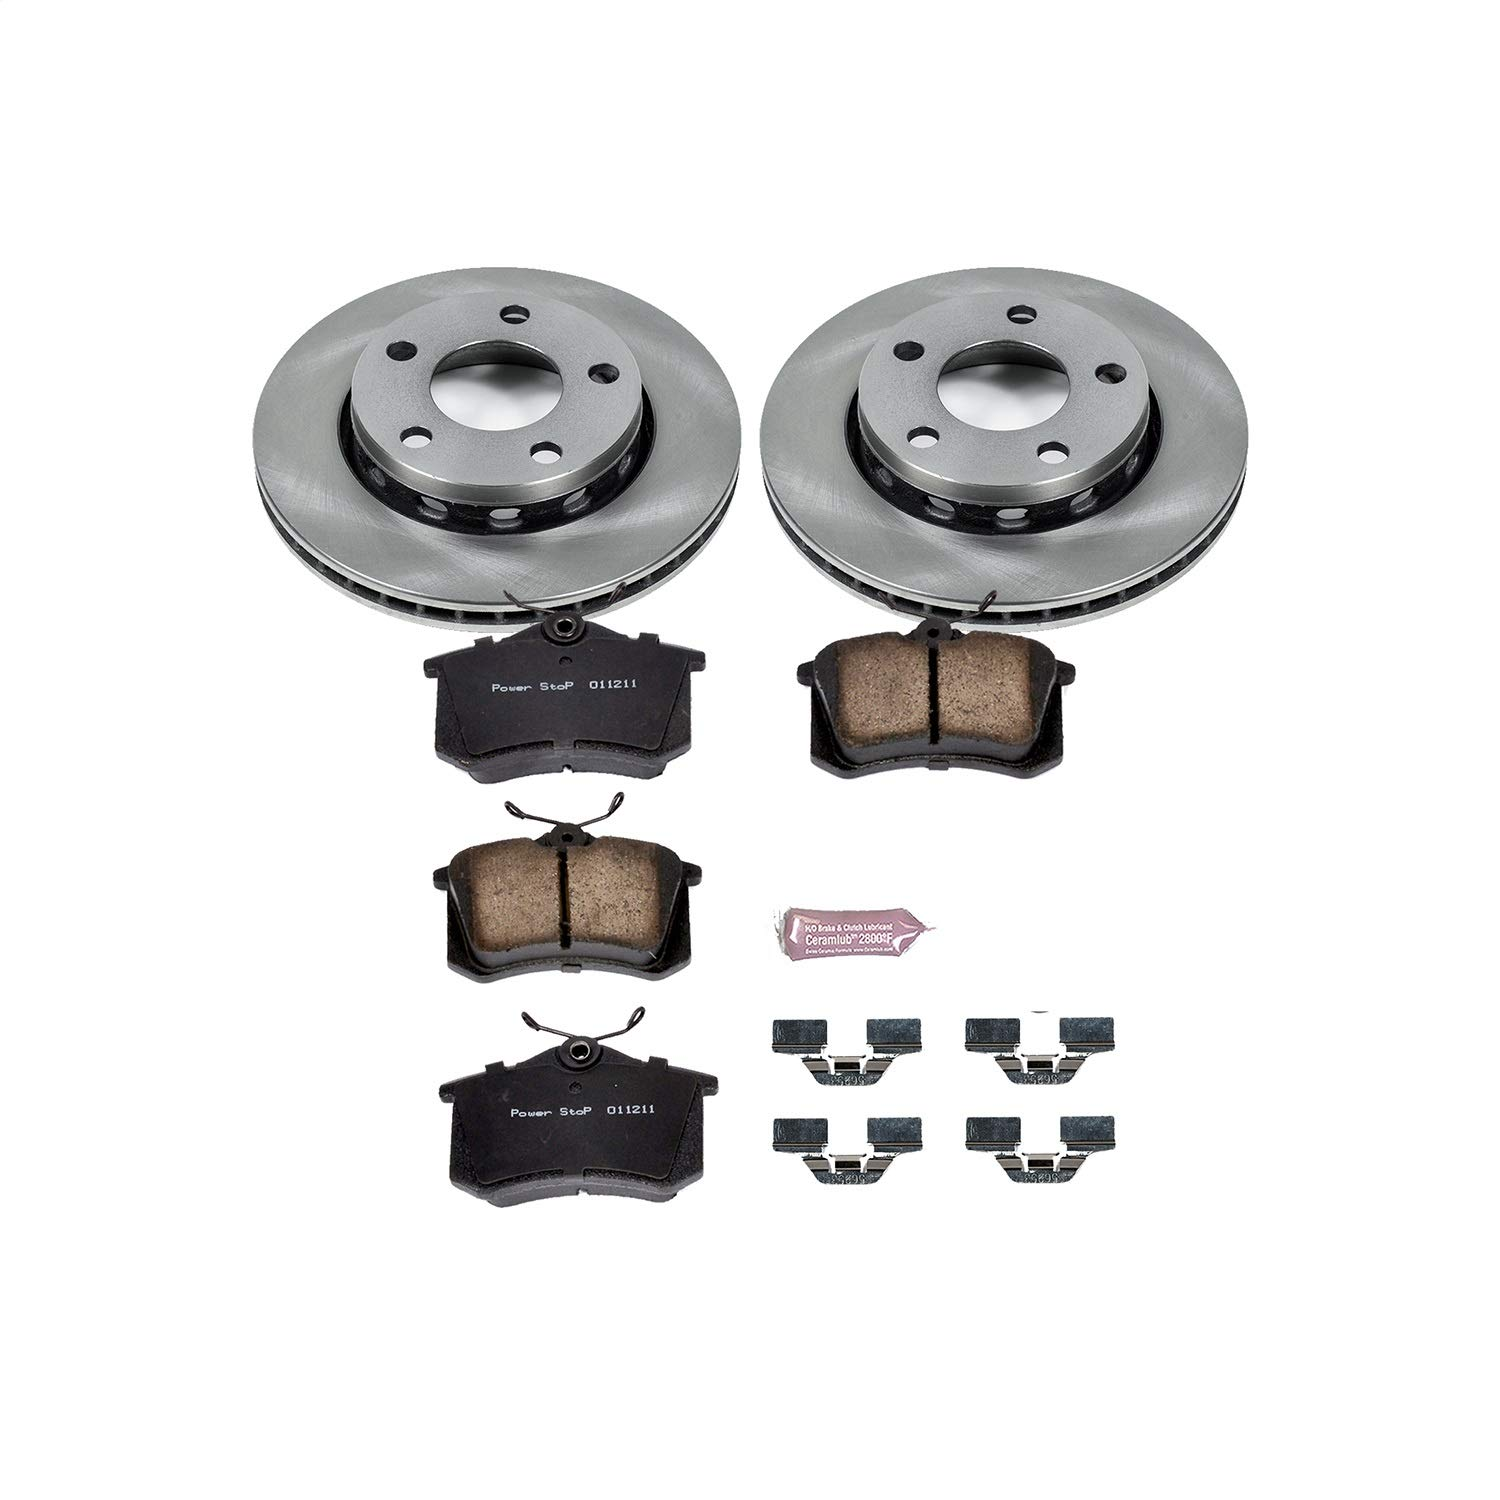 Power Stop KOE894 Autospecialty By Power Stop 1-Click Daily Driver Brake Kits Rear Incl OE Replacement Rotors w//Z16 Ceramic Scorched Brake Pads Autospecialty By Power Stop 1-Click Daily Driver Brake Kits 10.07 in